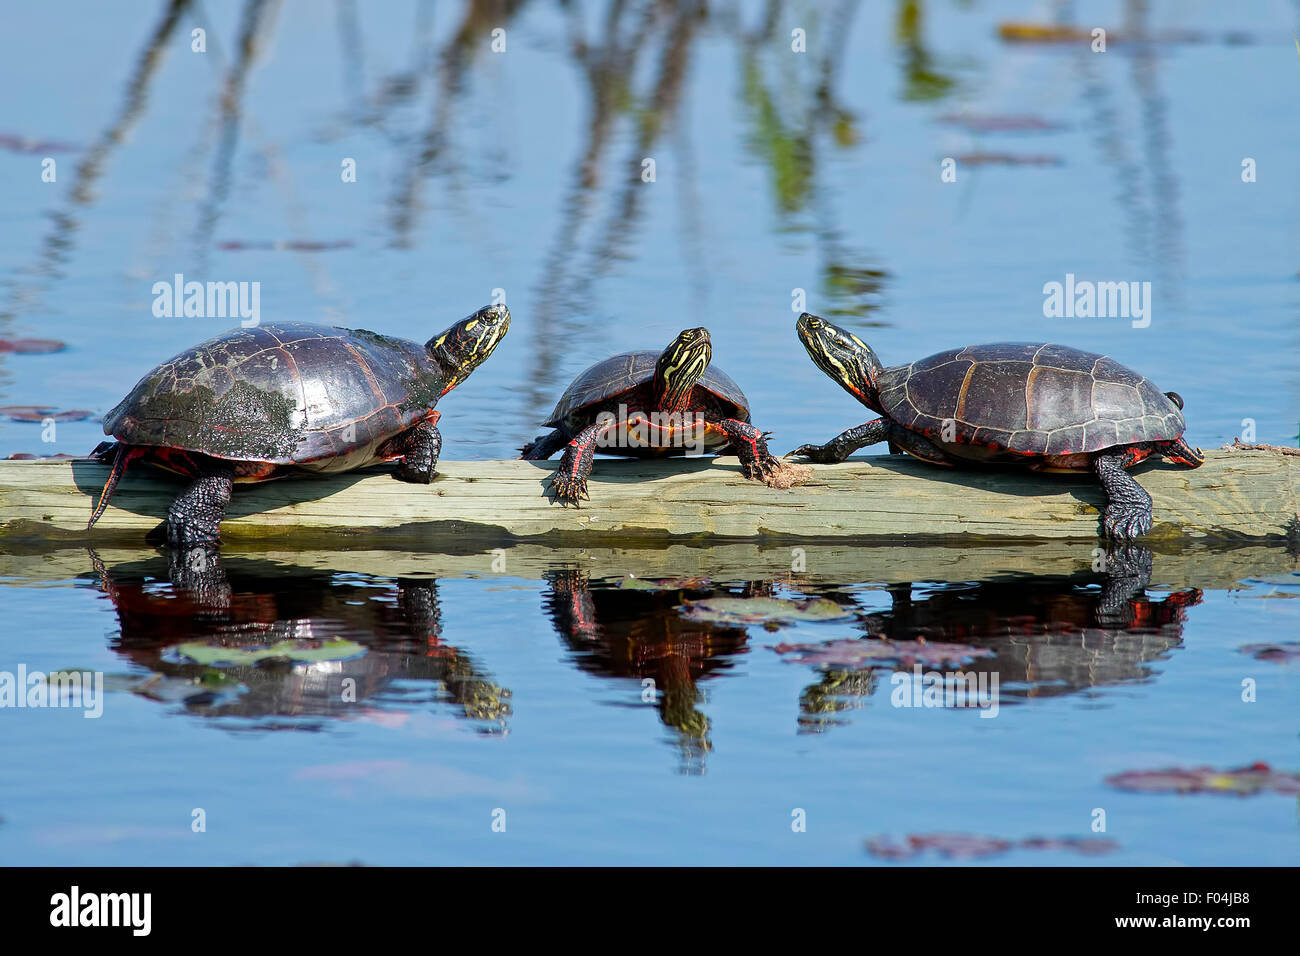 Eastern Painted Turtles resting on a Log. Stock Photo